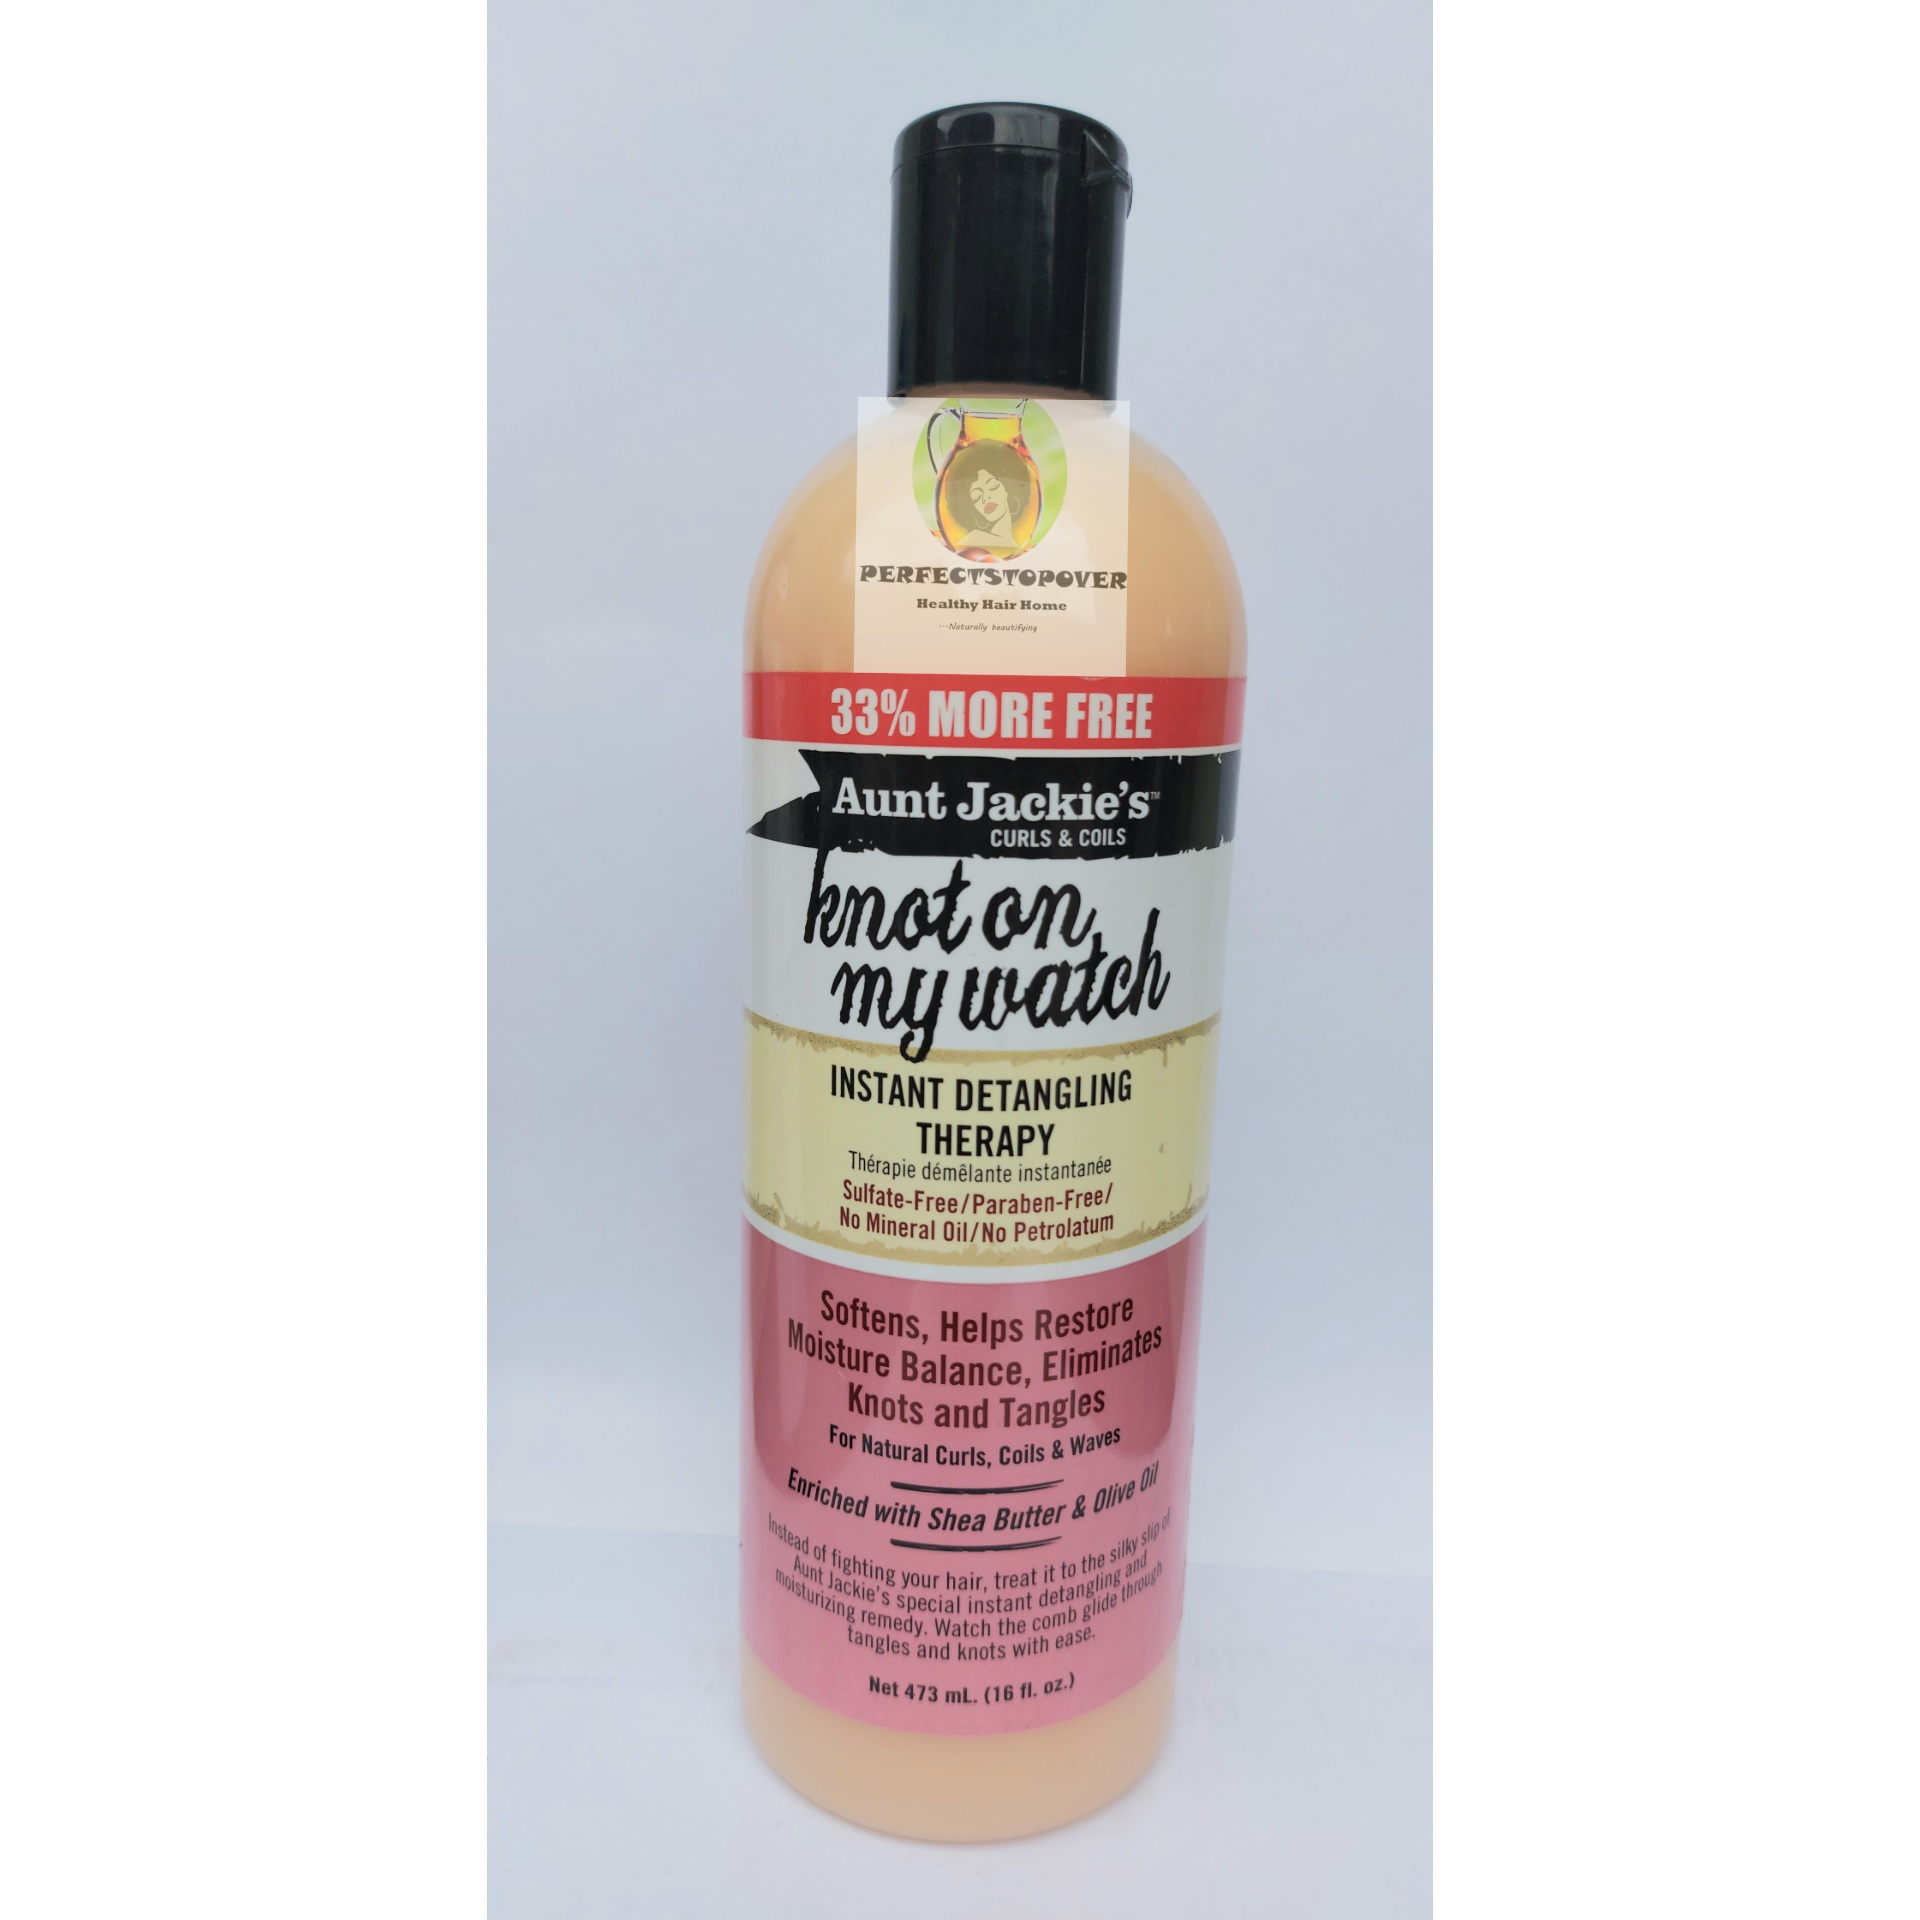 Aunt Jackie's curls and coils KNOT ON MY WATCH instant detangling therapy 33% more